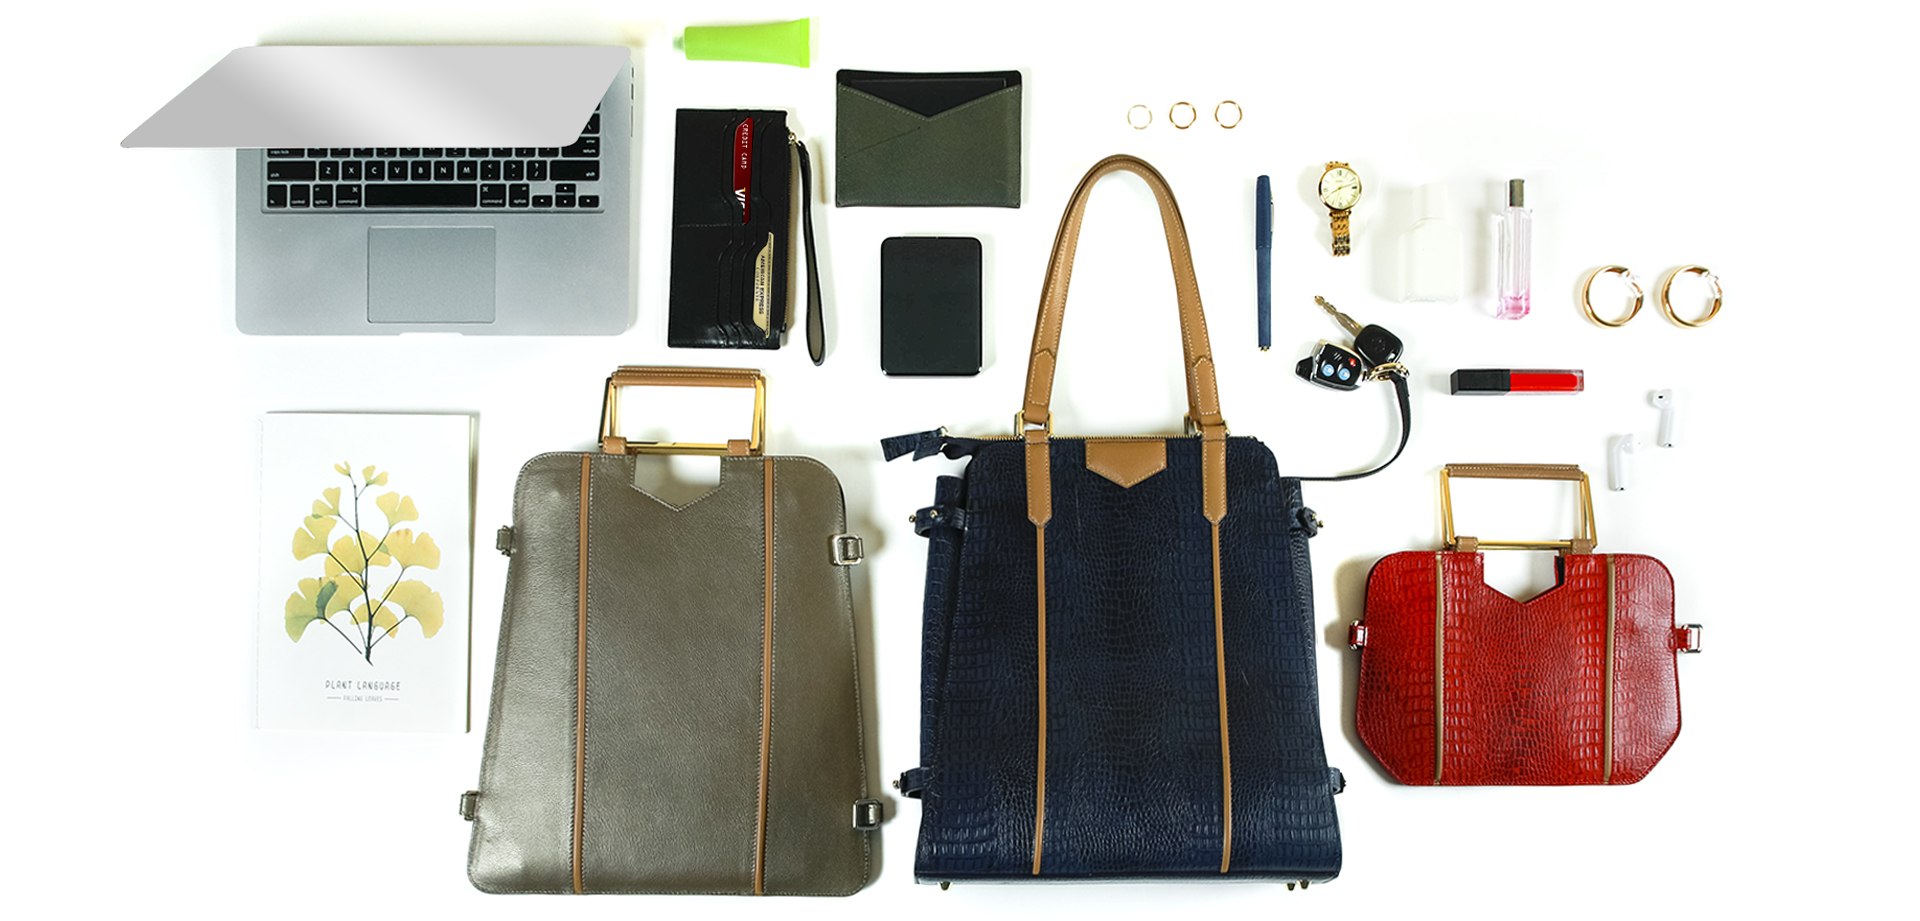 Spacious Urban Triad 3-bags-in-1 in leather fits omni wallet & passport case